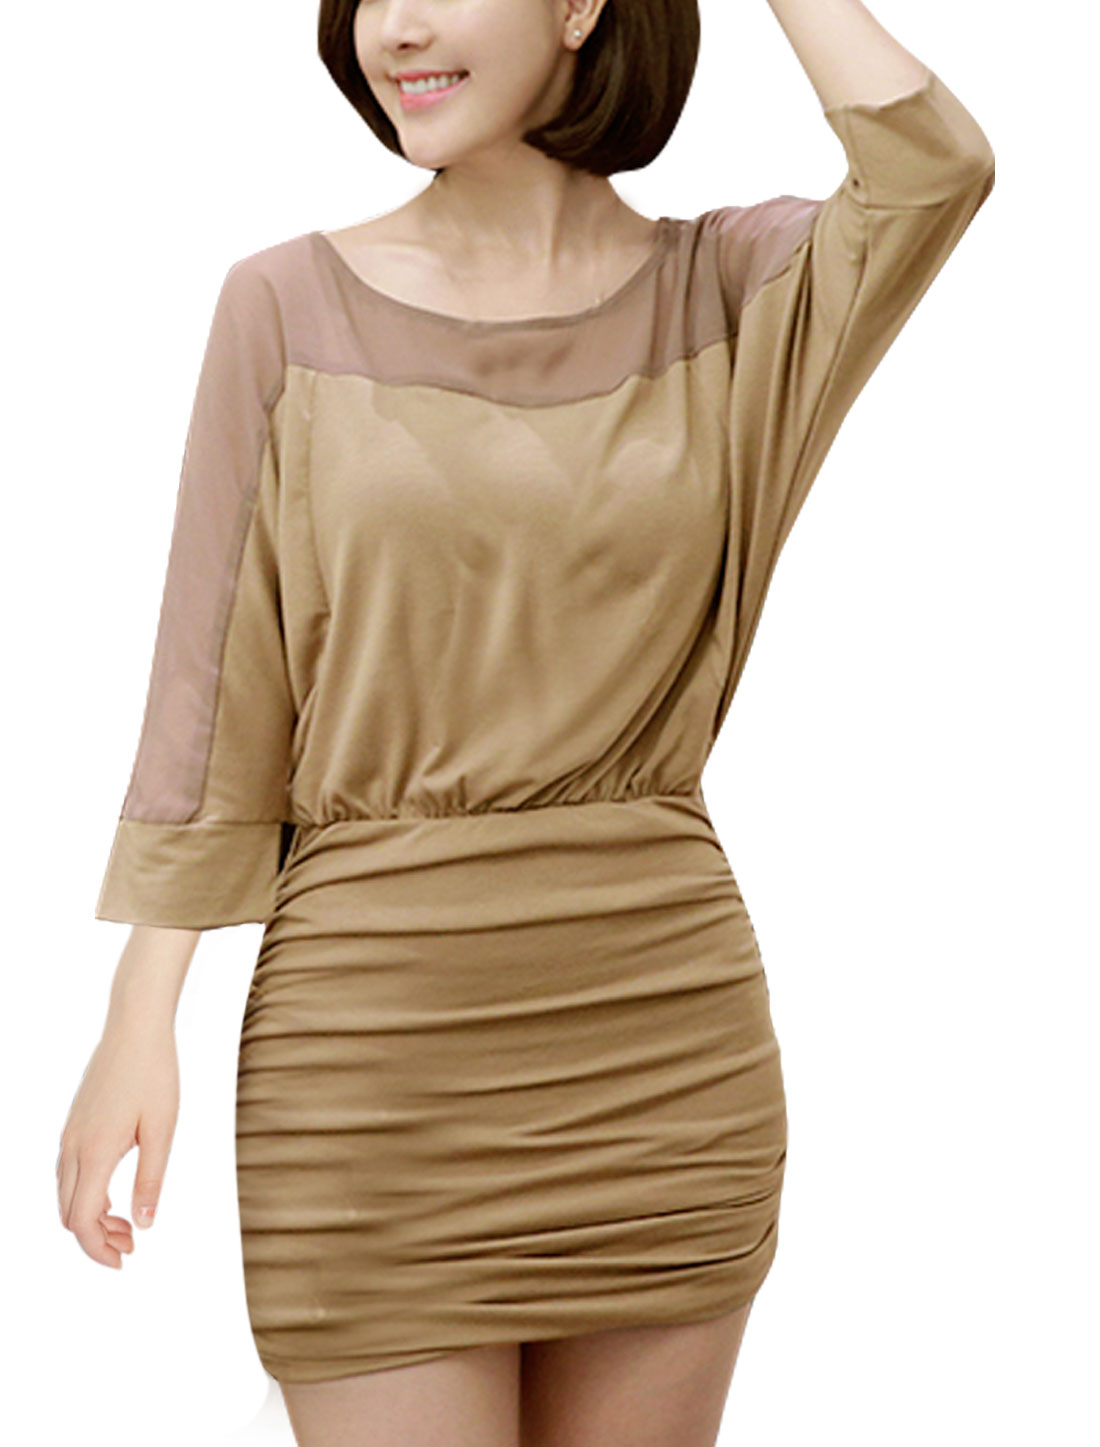 Women 3/4 Batwing Sleeves Paneled Mini Ruched Dress Brown S